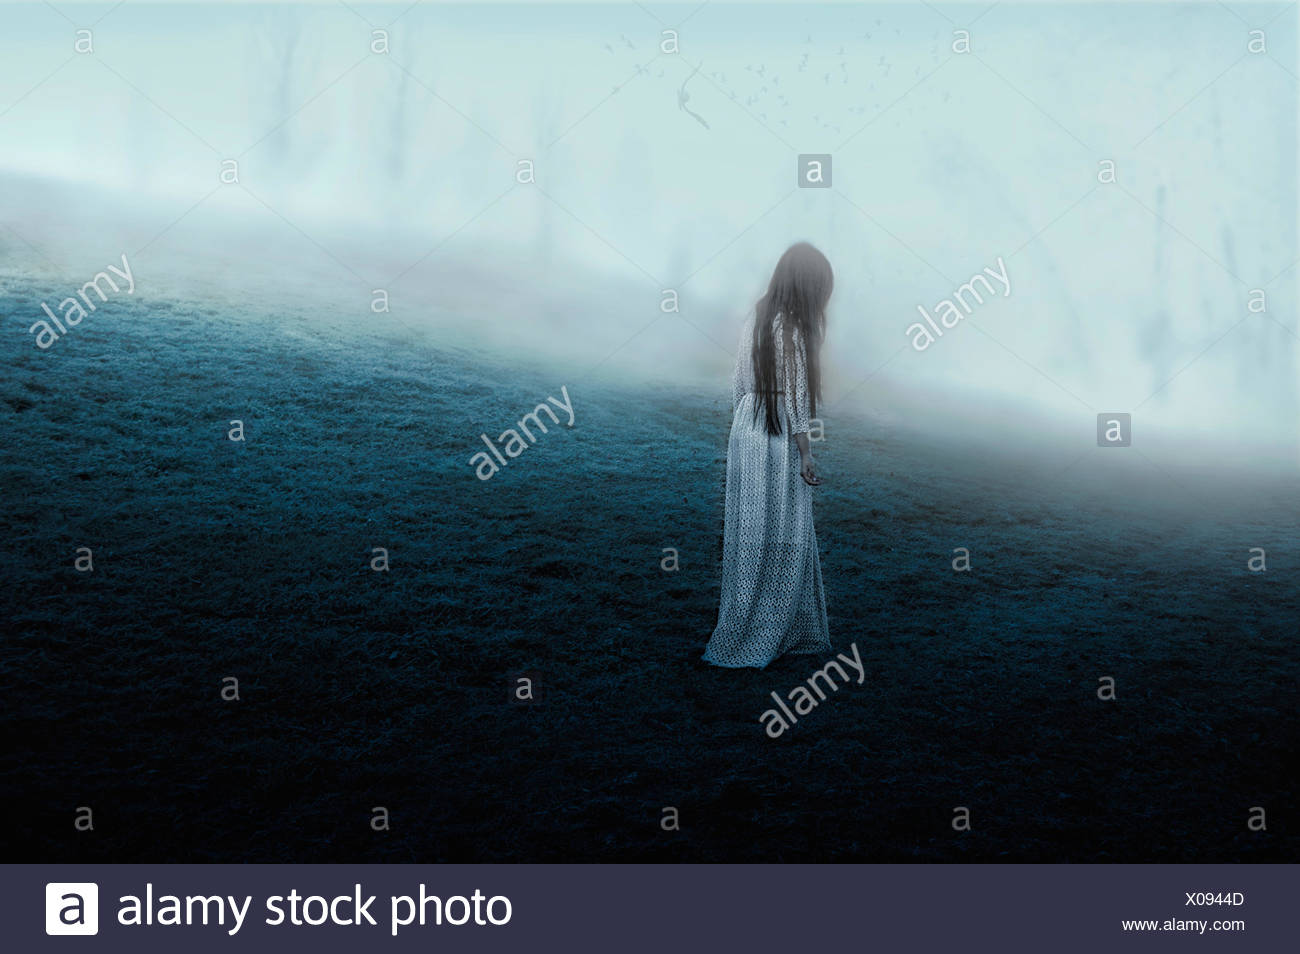 Woman walking on misty hill - Stock Image